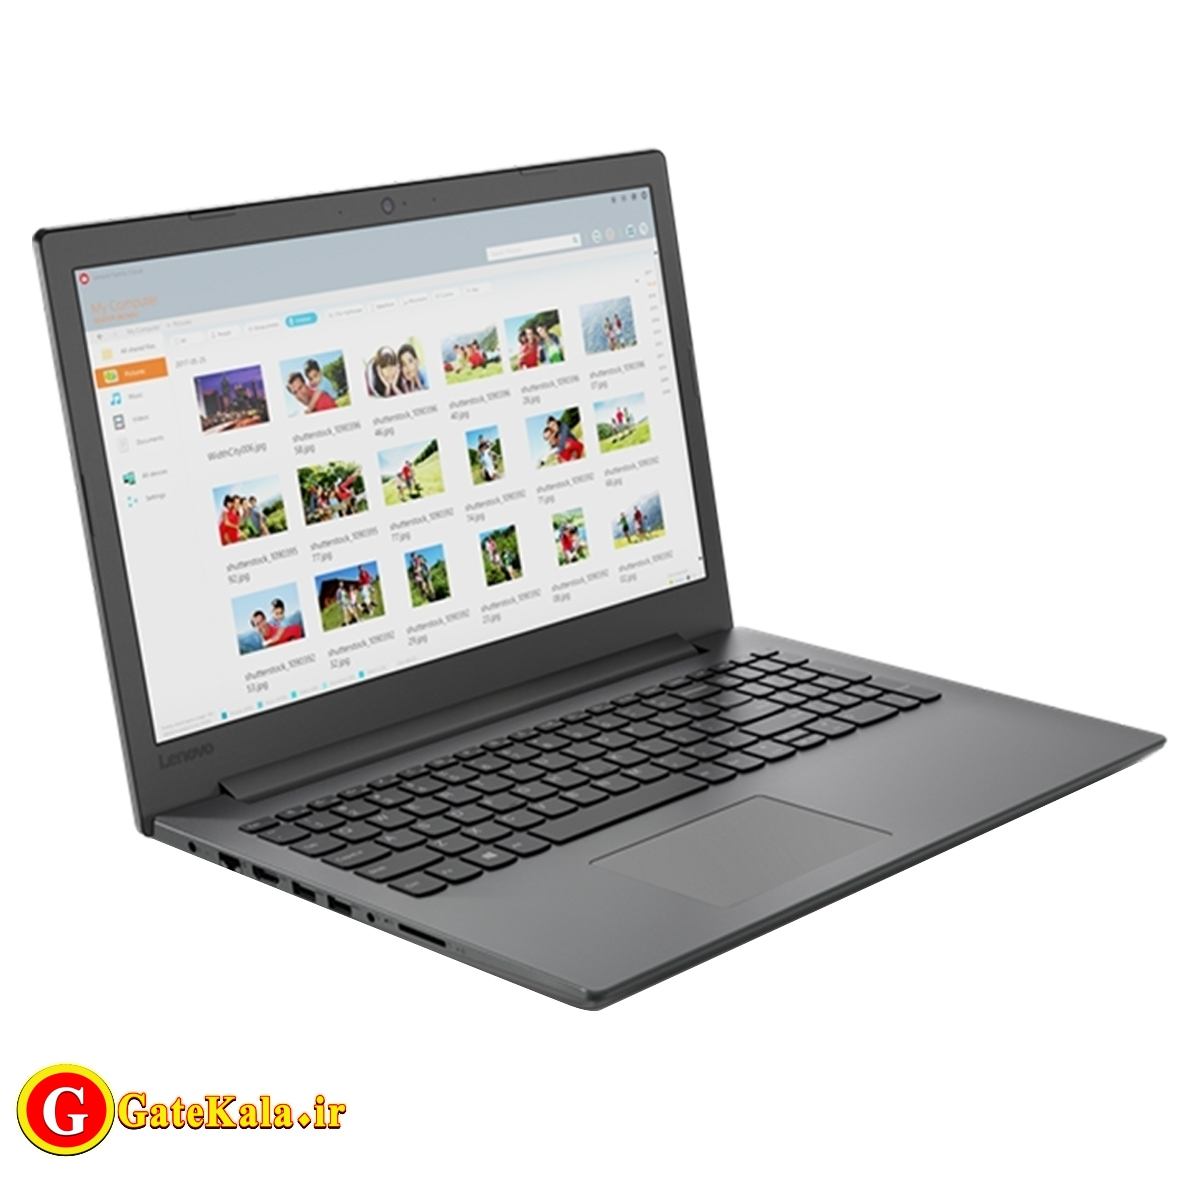 Lenovo IdeaPad 130 | CPU i3 8130U | RAM 4GB | 1TB HDD | MX110 2G